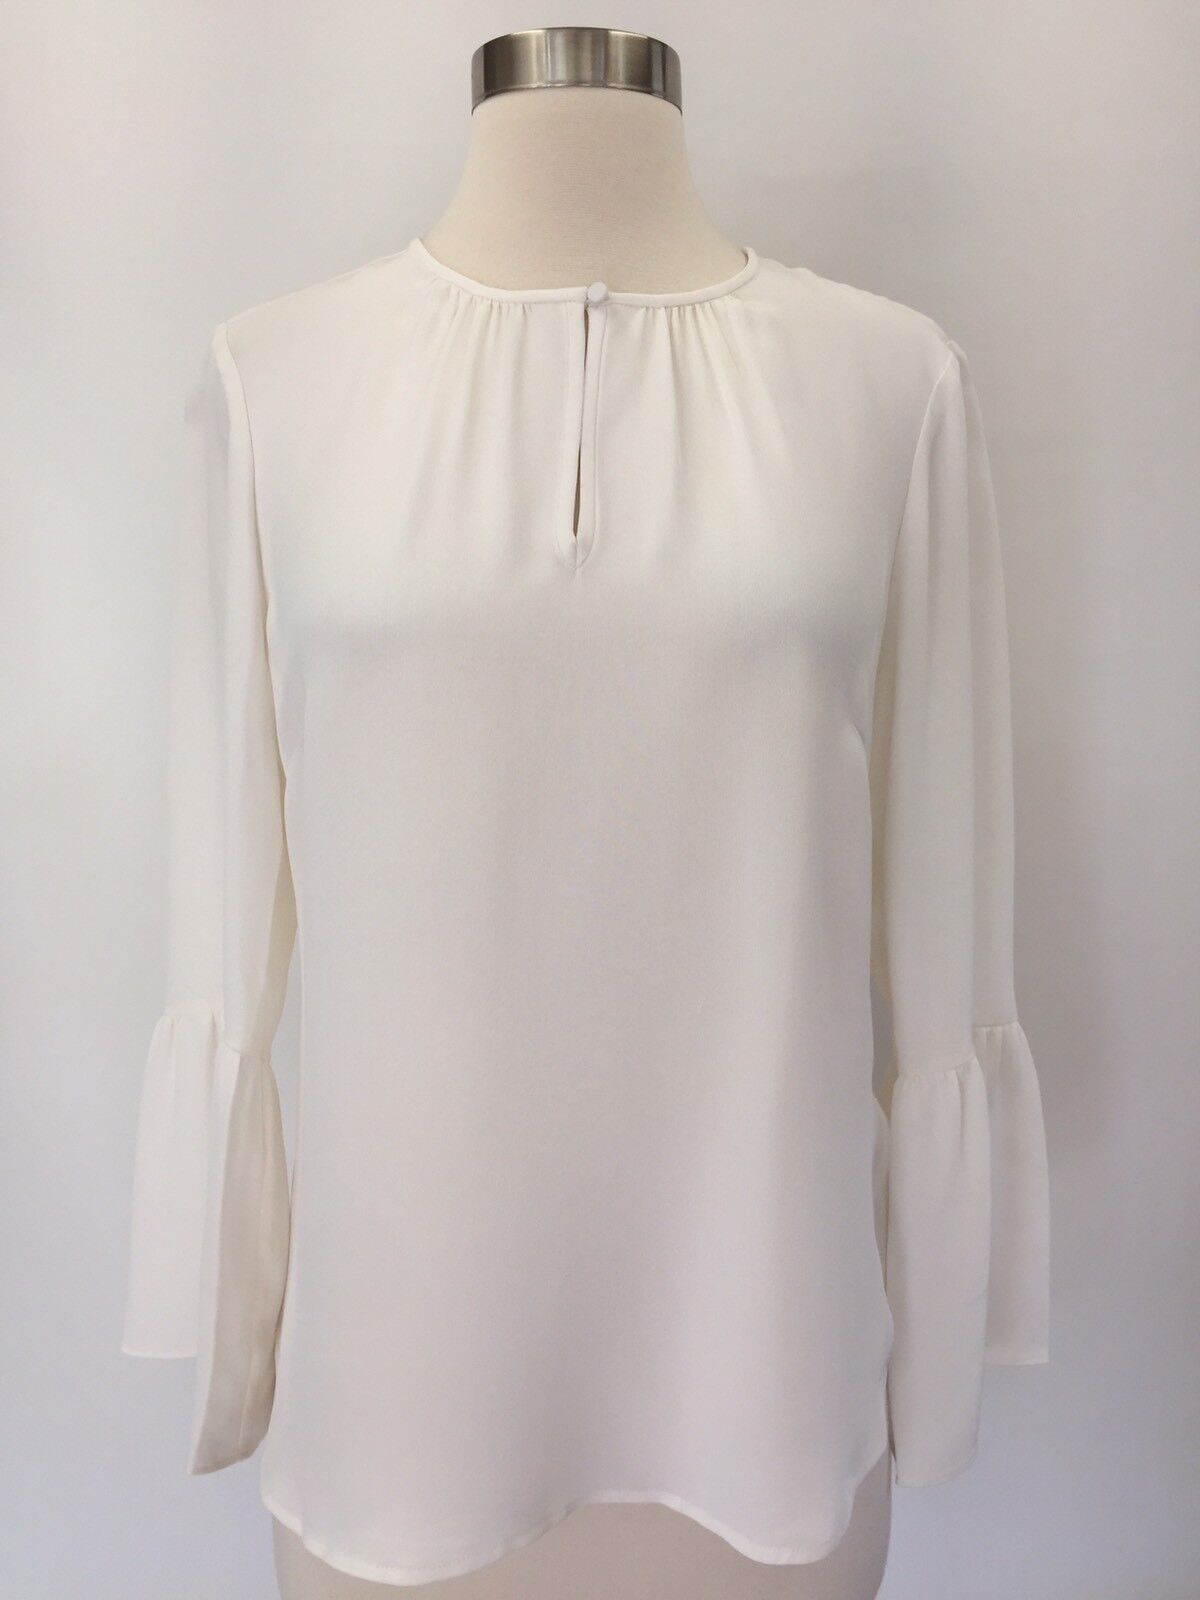 New G2467 J.CREW Ivory Silk Bell-Sleeve Top Blouse Size 2